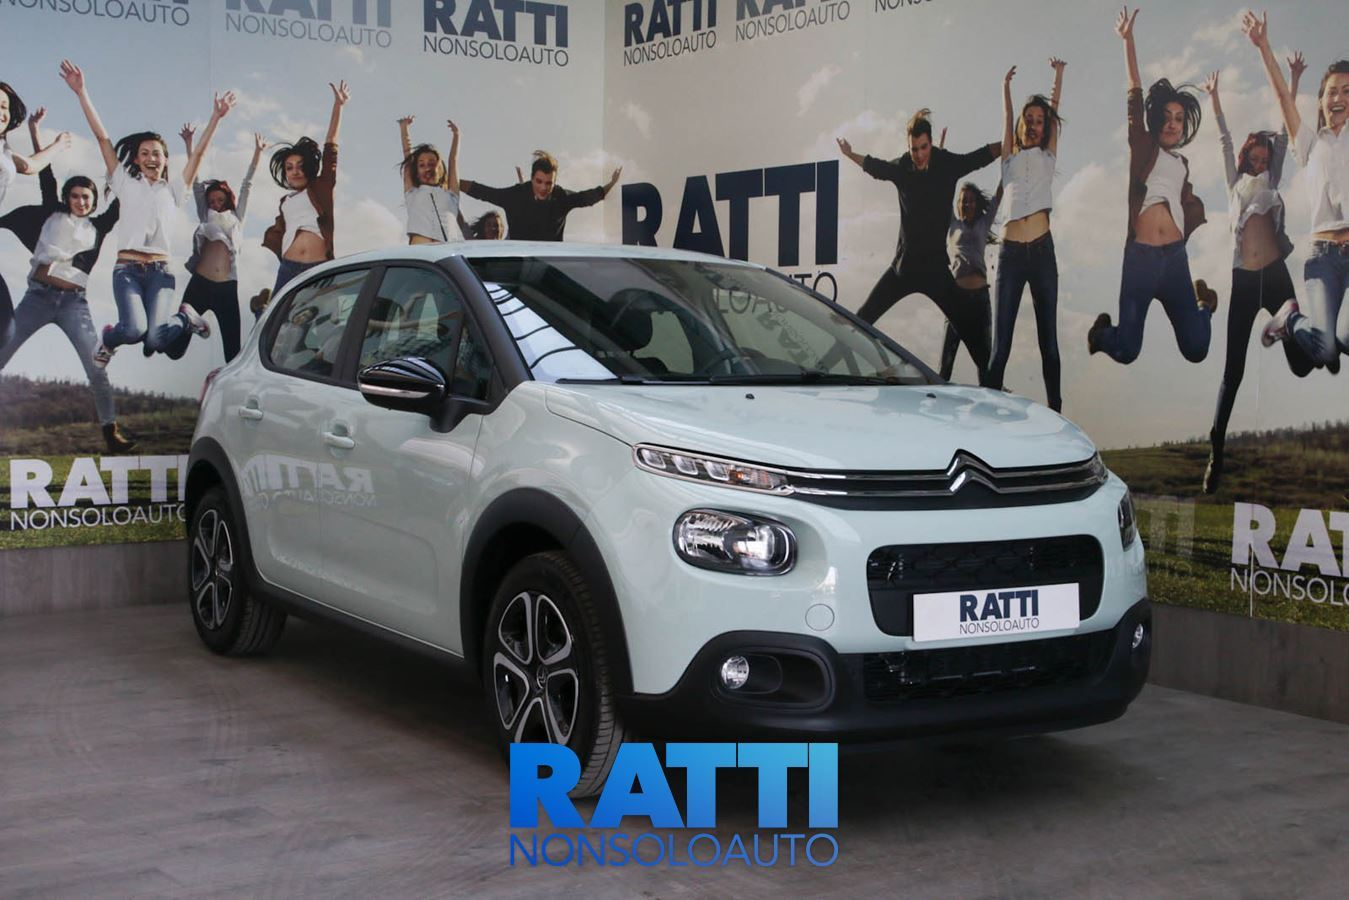 CITROEN C3 PureTech 1.2 68CV Feel Almond Green  cambio Manuale Benzina Km 0 berlina due volumi 5 porte 5 posti EURO 6